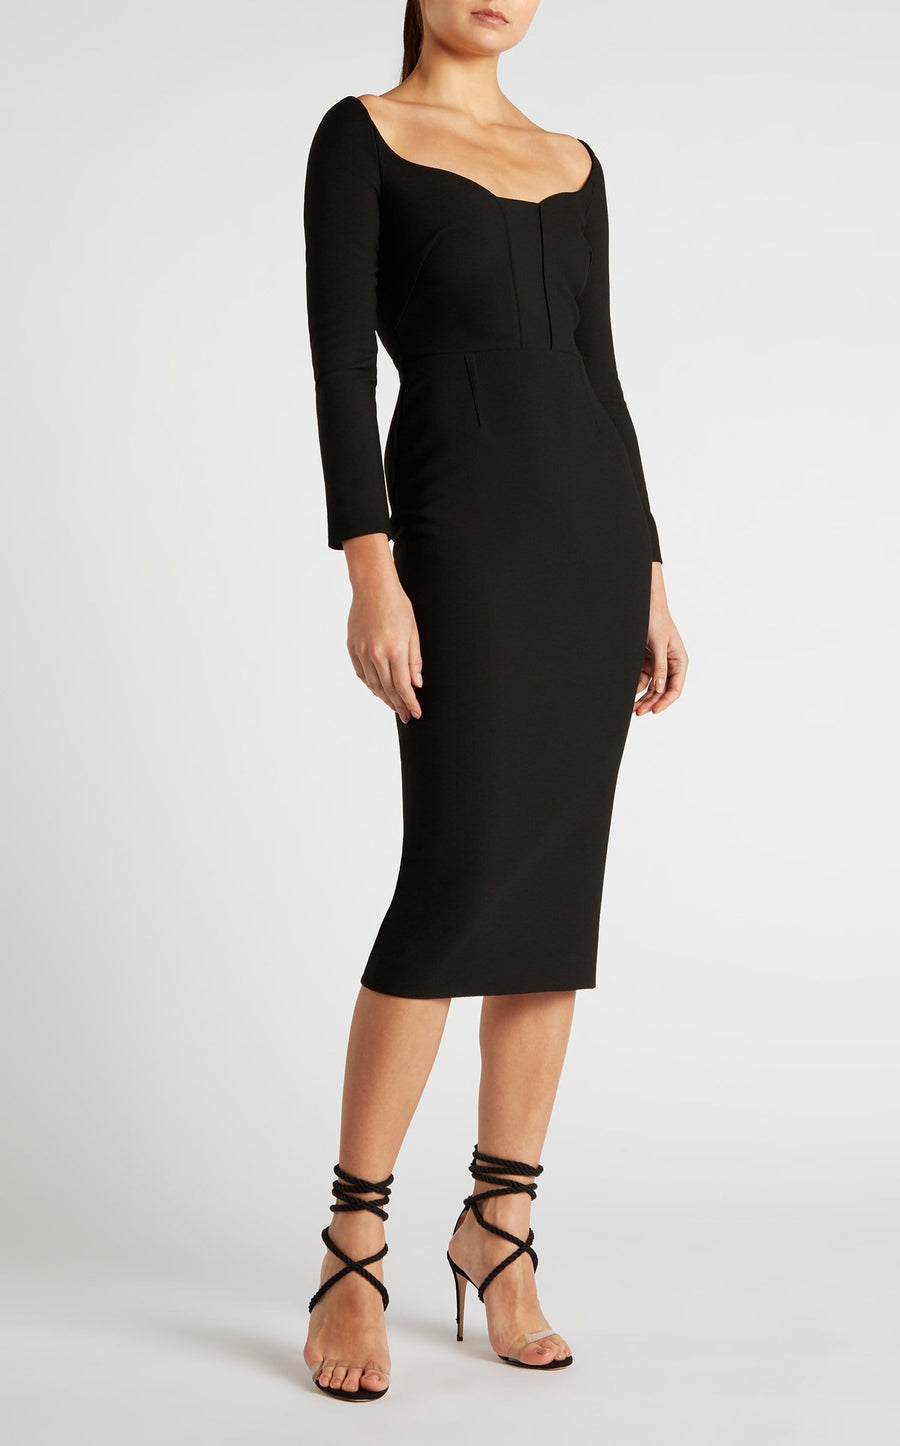 Ardon Dress In Black from Roland Mouret